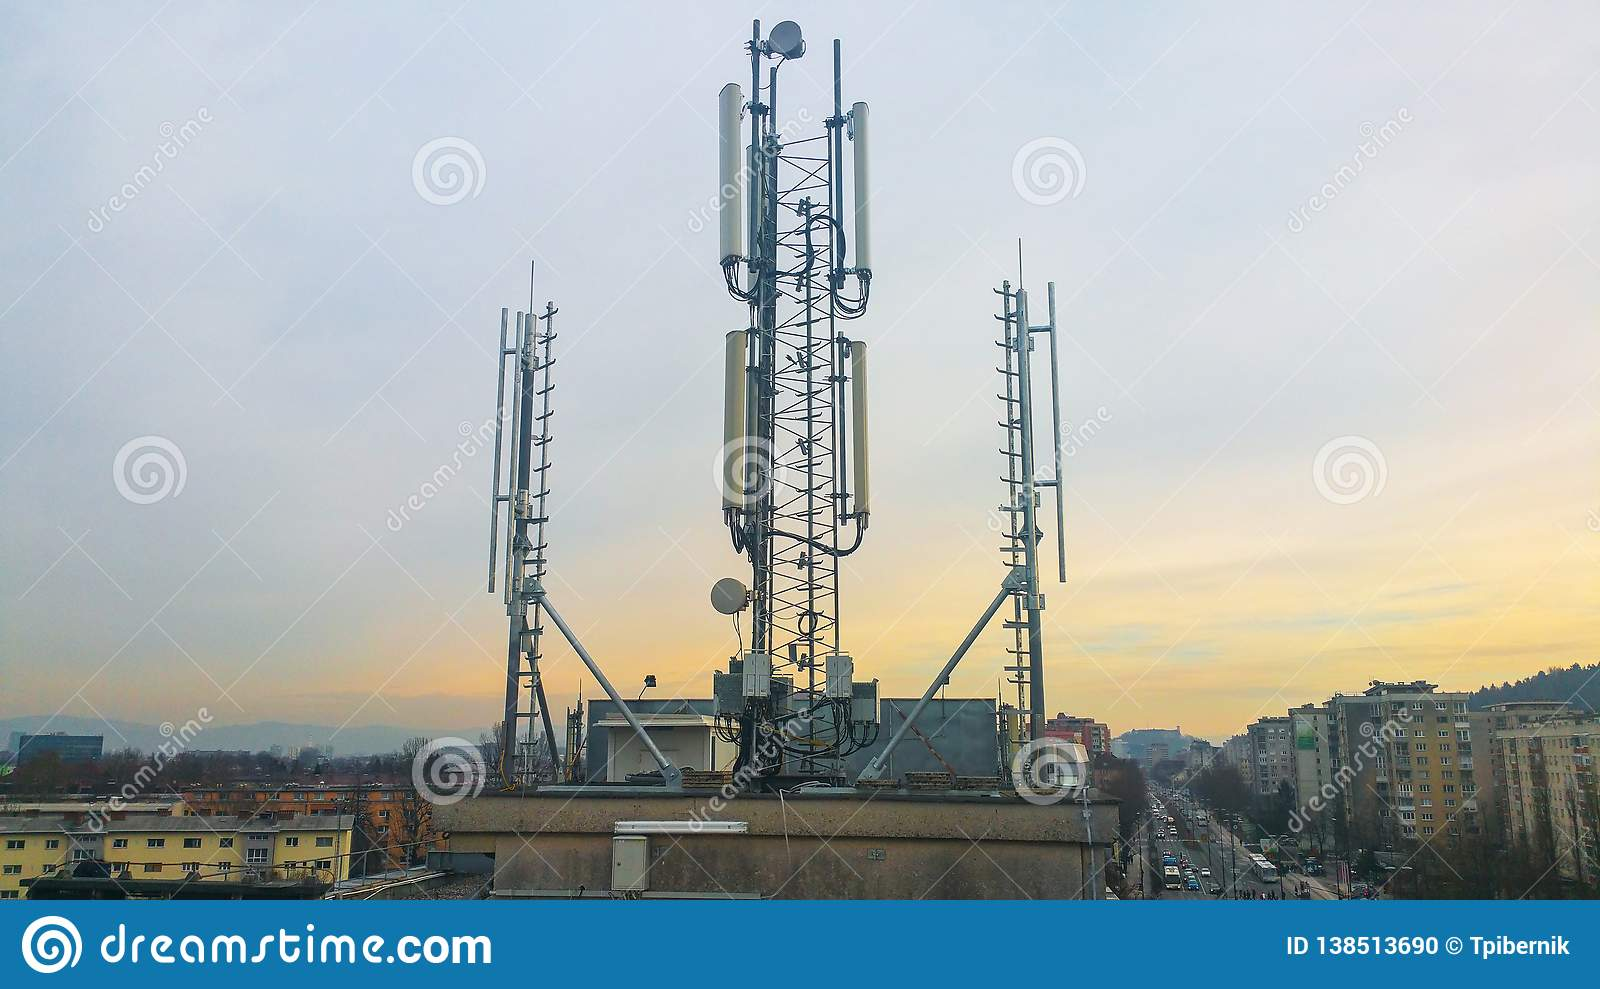 Cellular network antenna radiating and broadcasting strong power signal waves